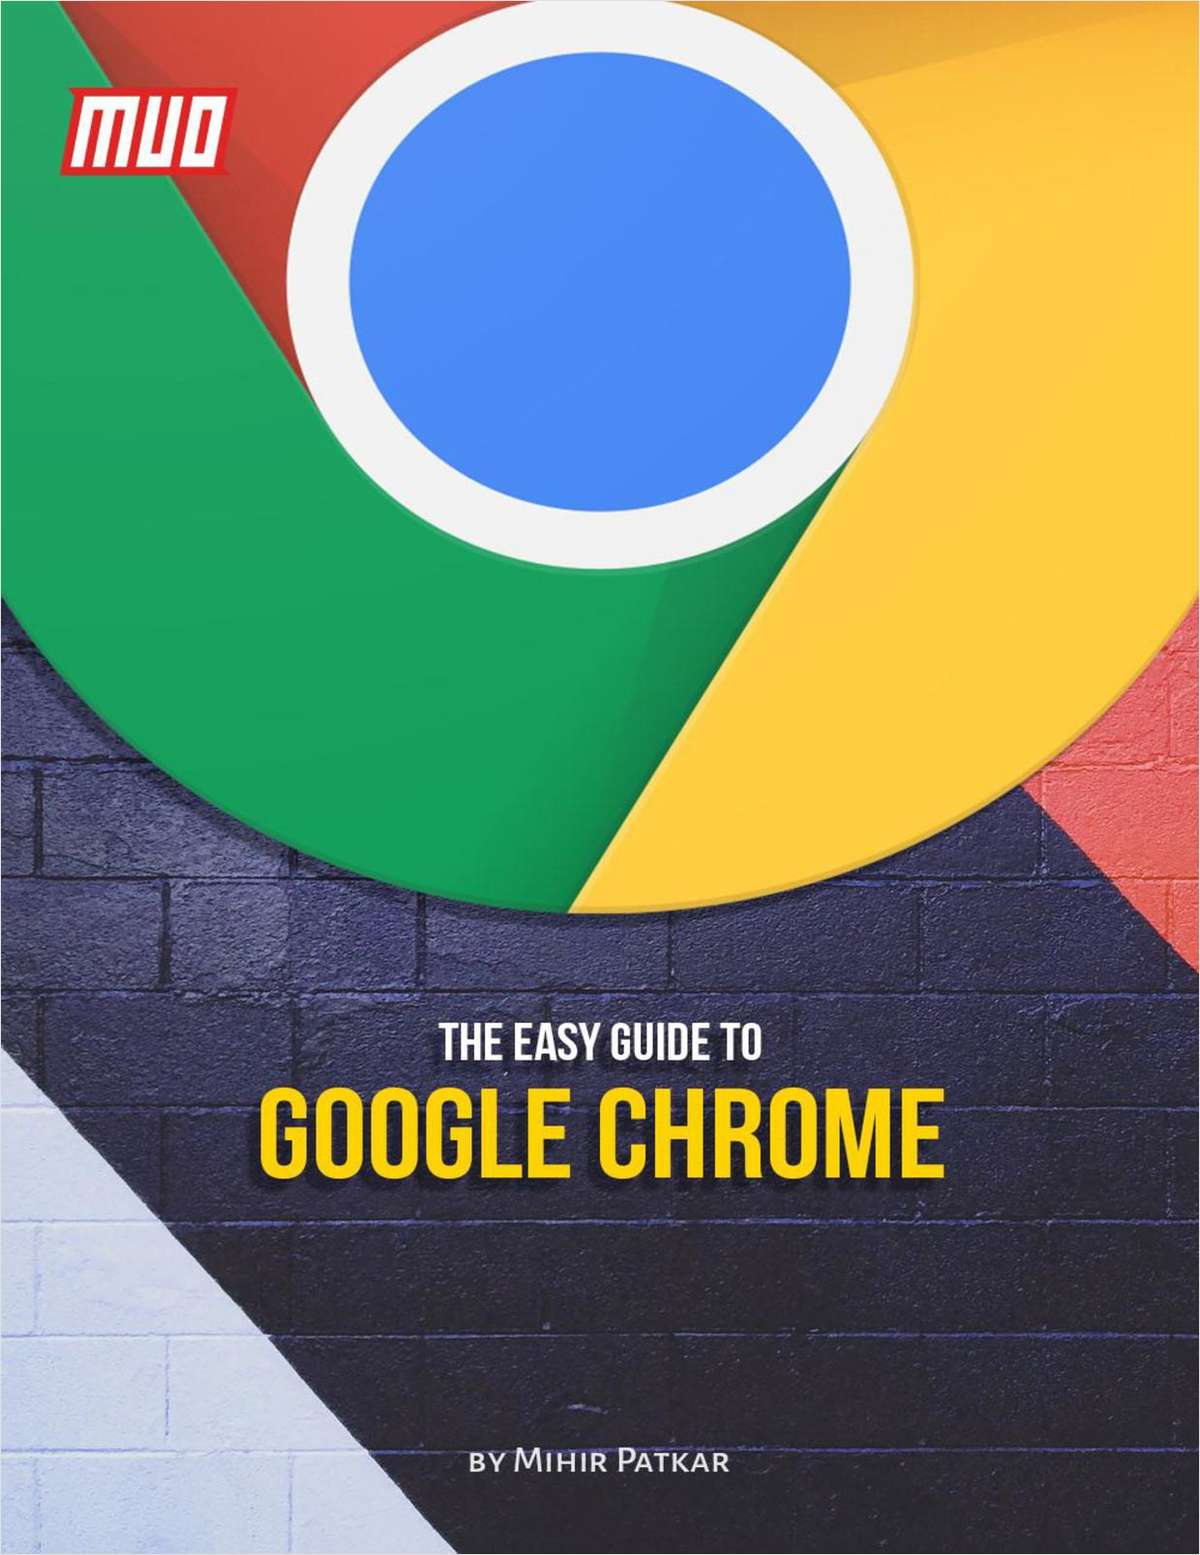 The Easy Guide to Google Chrome